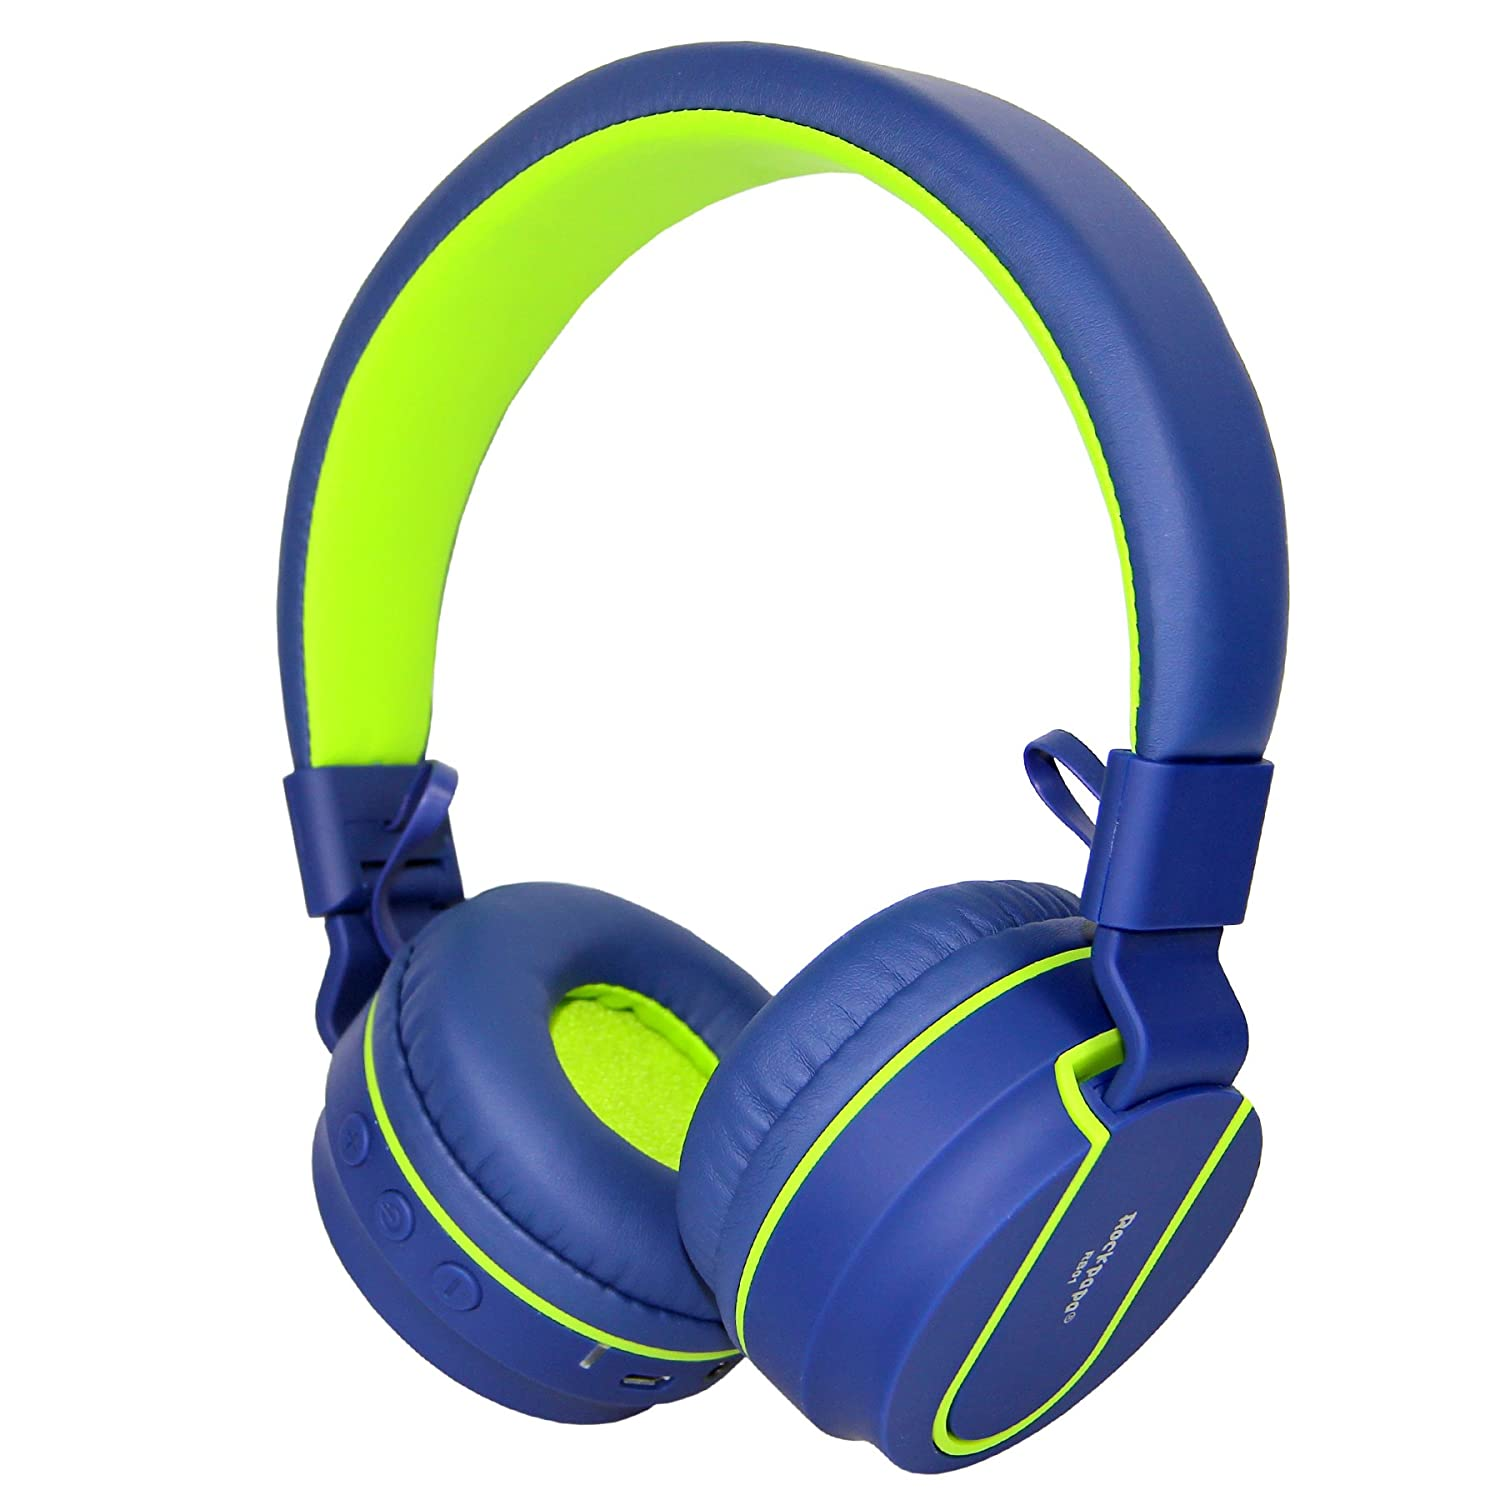 RockPapa Stereo Foldable Wireless Bluetooth Headphones Adjustable Lightweight Headsets with Microphone for Smartphones Android Devices iPhone iPad iPod Laptop (Blue/Green)